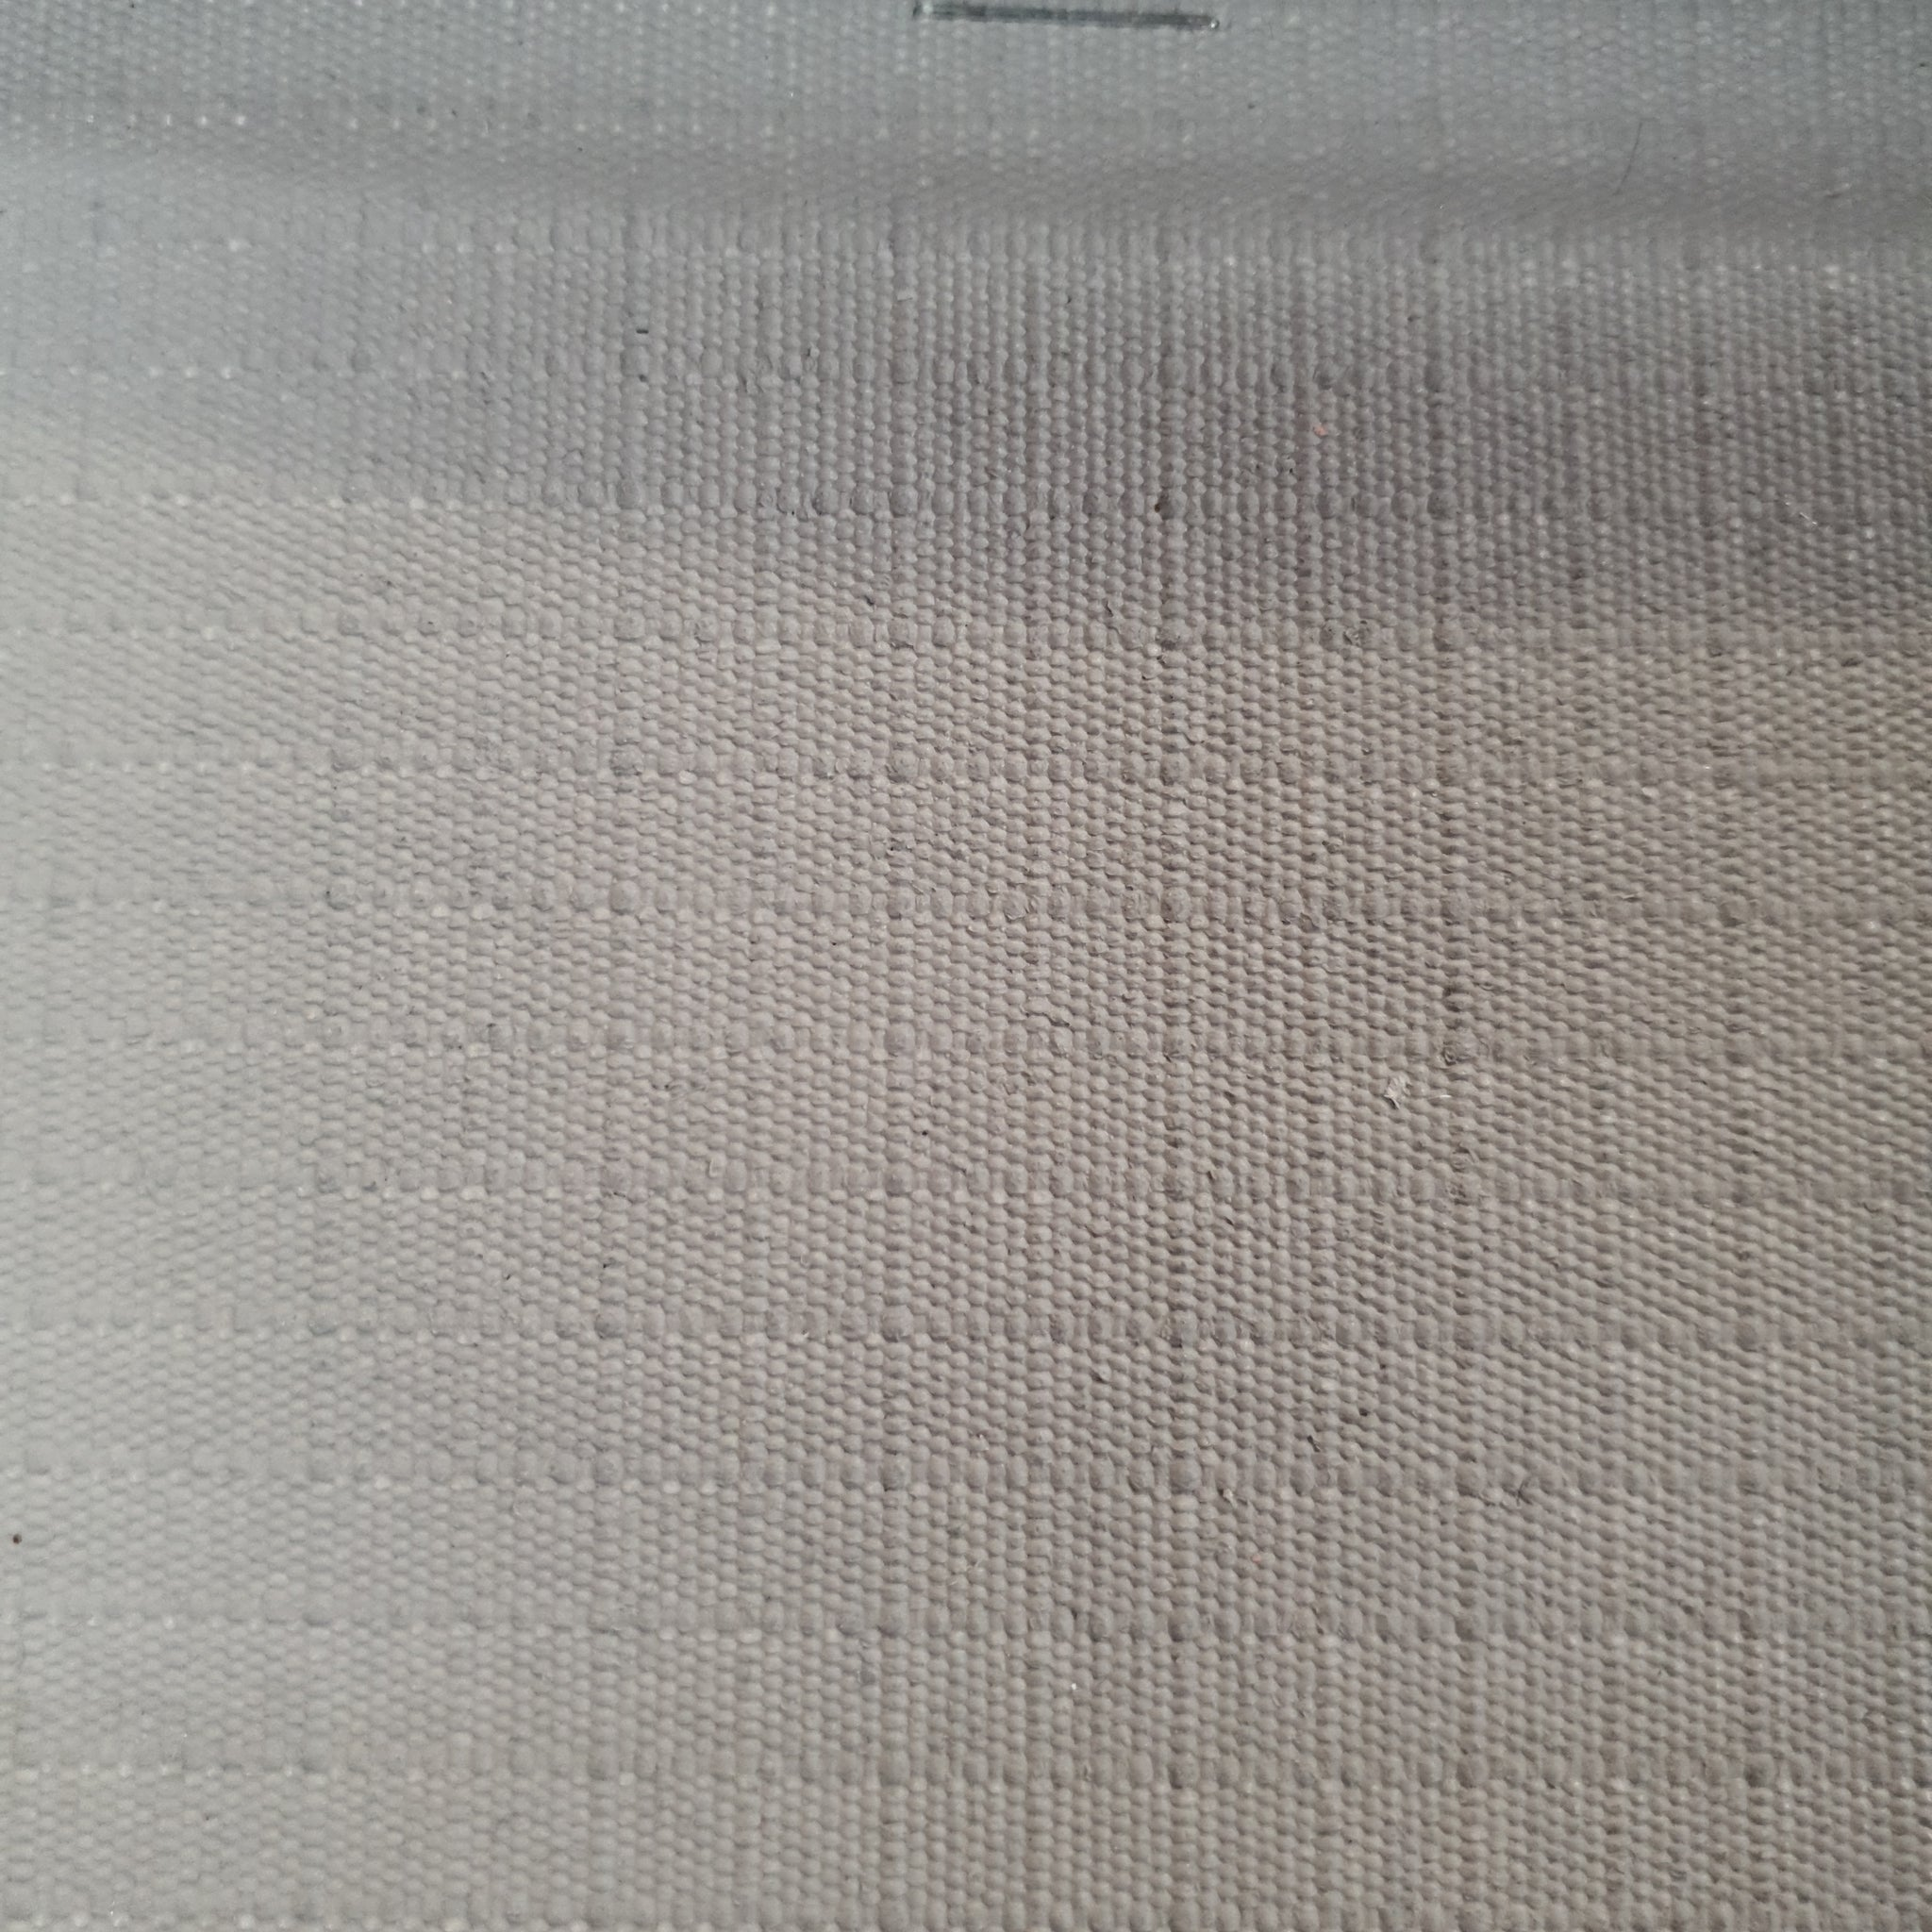 Fabric - Ripstop Canvas 180cm Plain - Per Meter